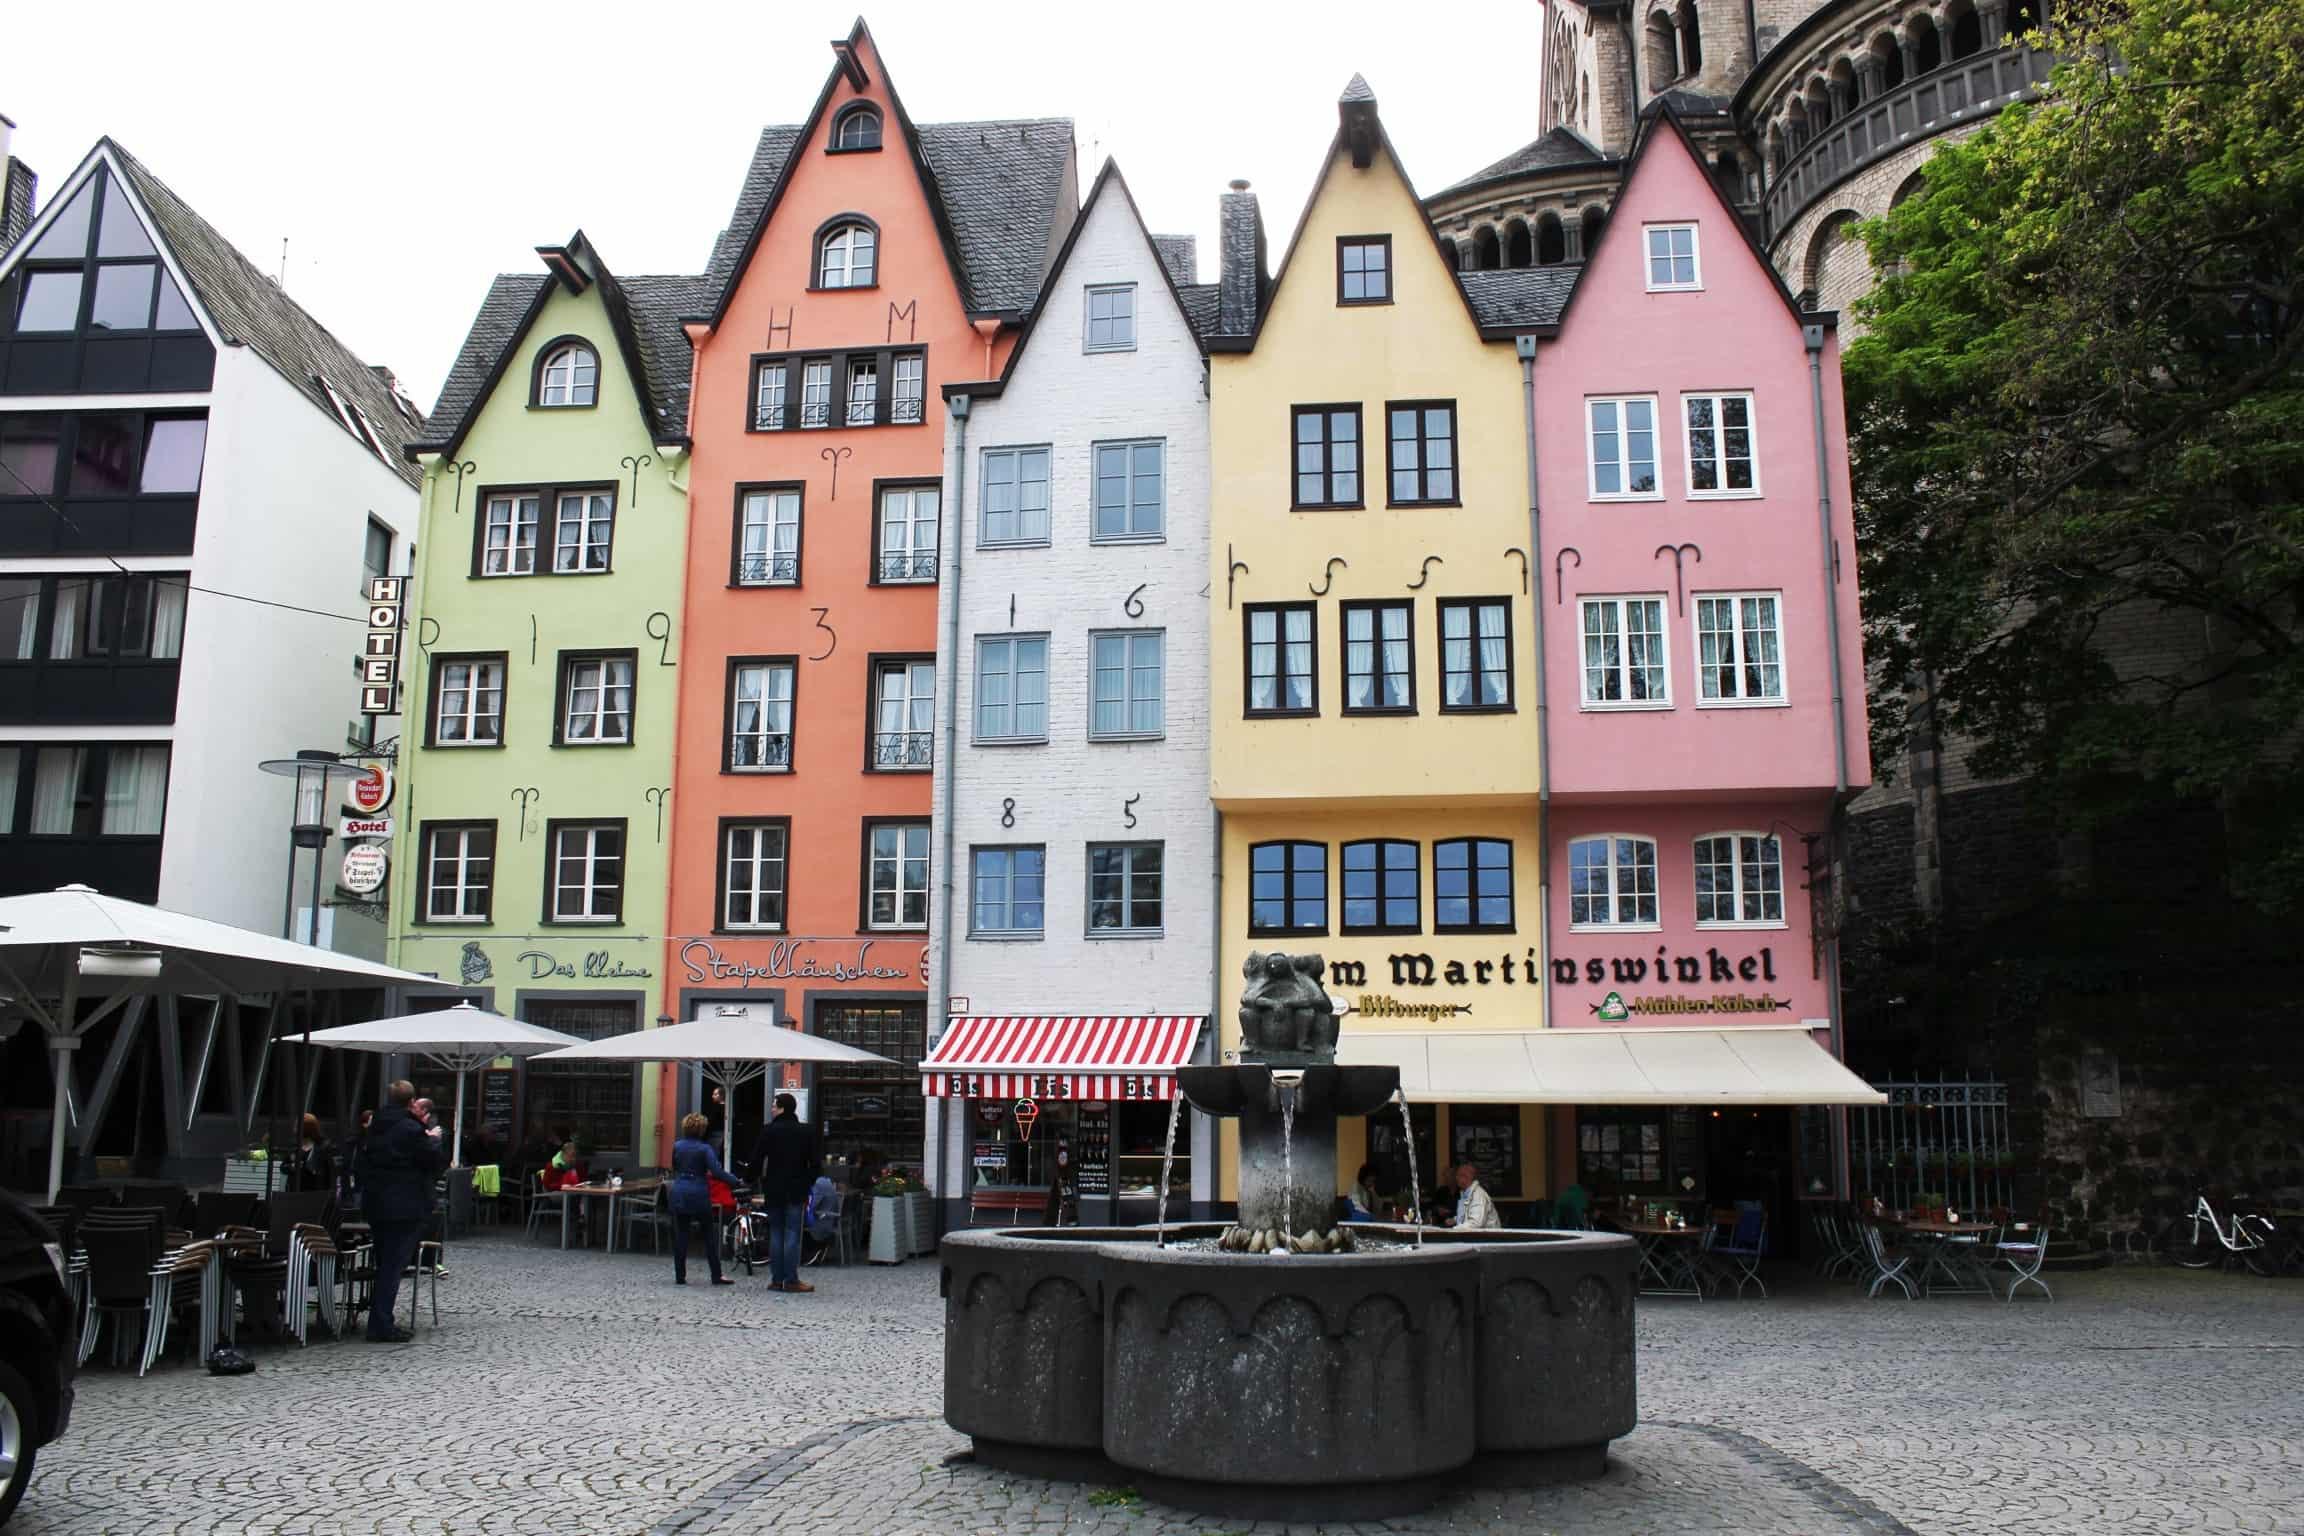 5 reasons to visit cologne - Cologne's Old Town reasons to visit cologne City Guide: 5 reasons to visit Cologne image 85 min